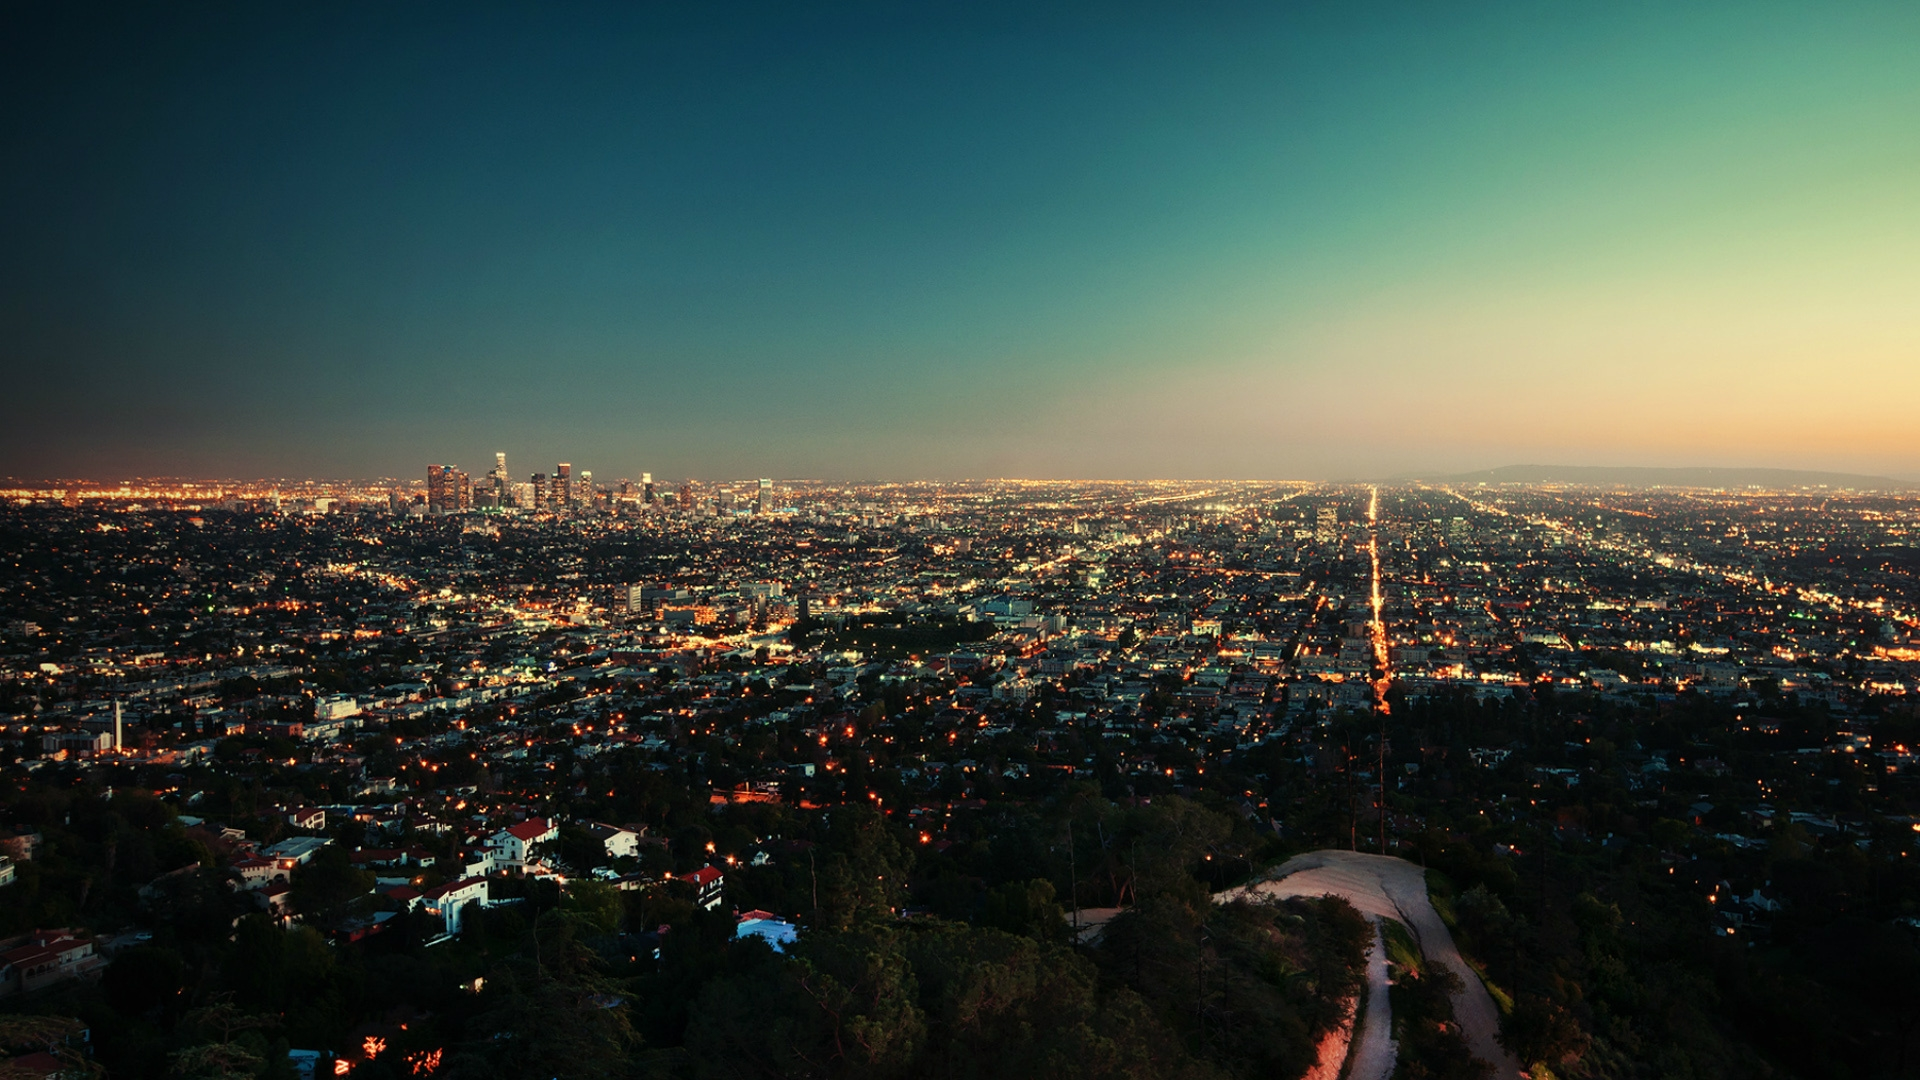 usa los angeles building top view Full HD 1080p HD Background 1920x1080